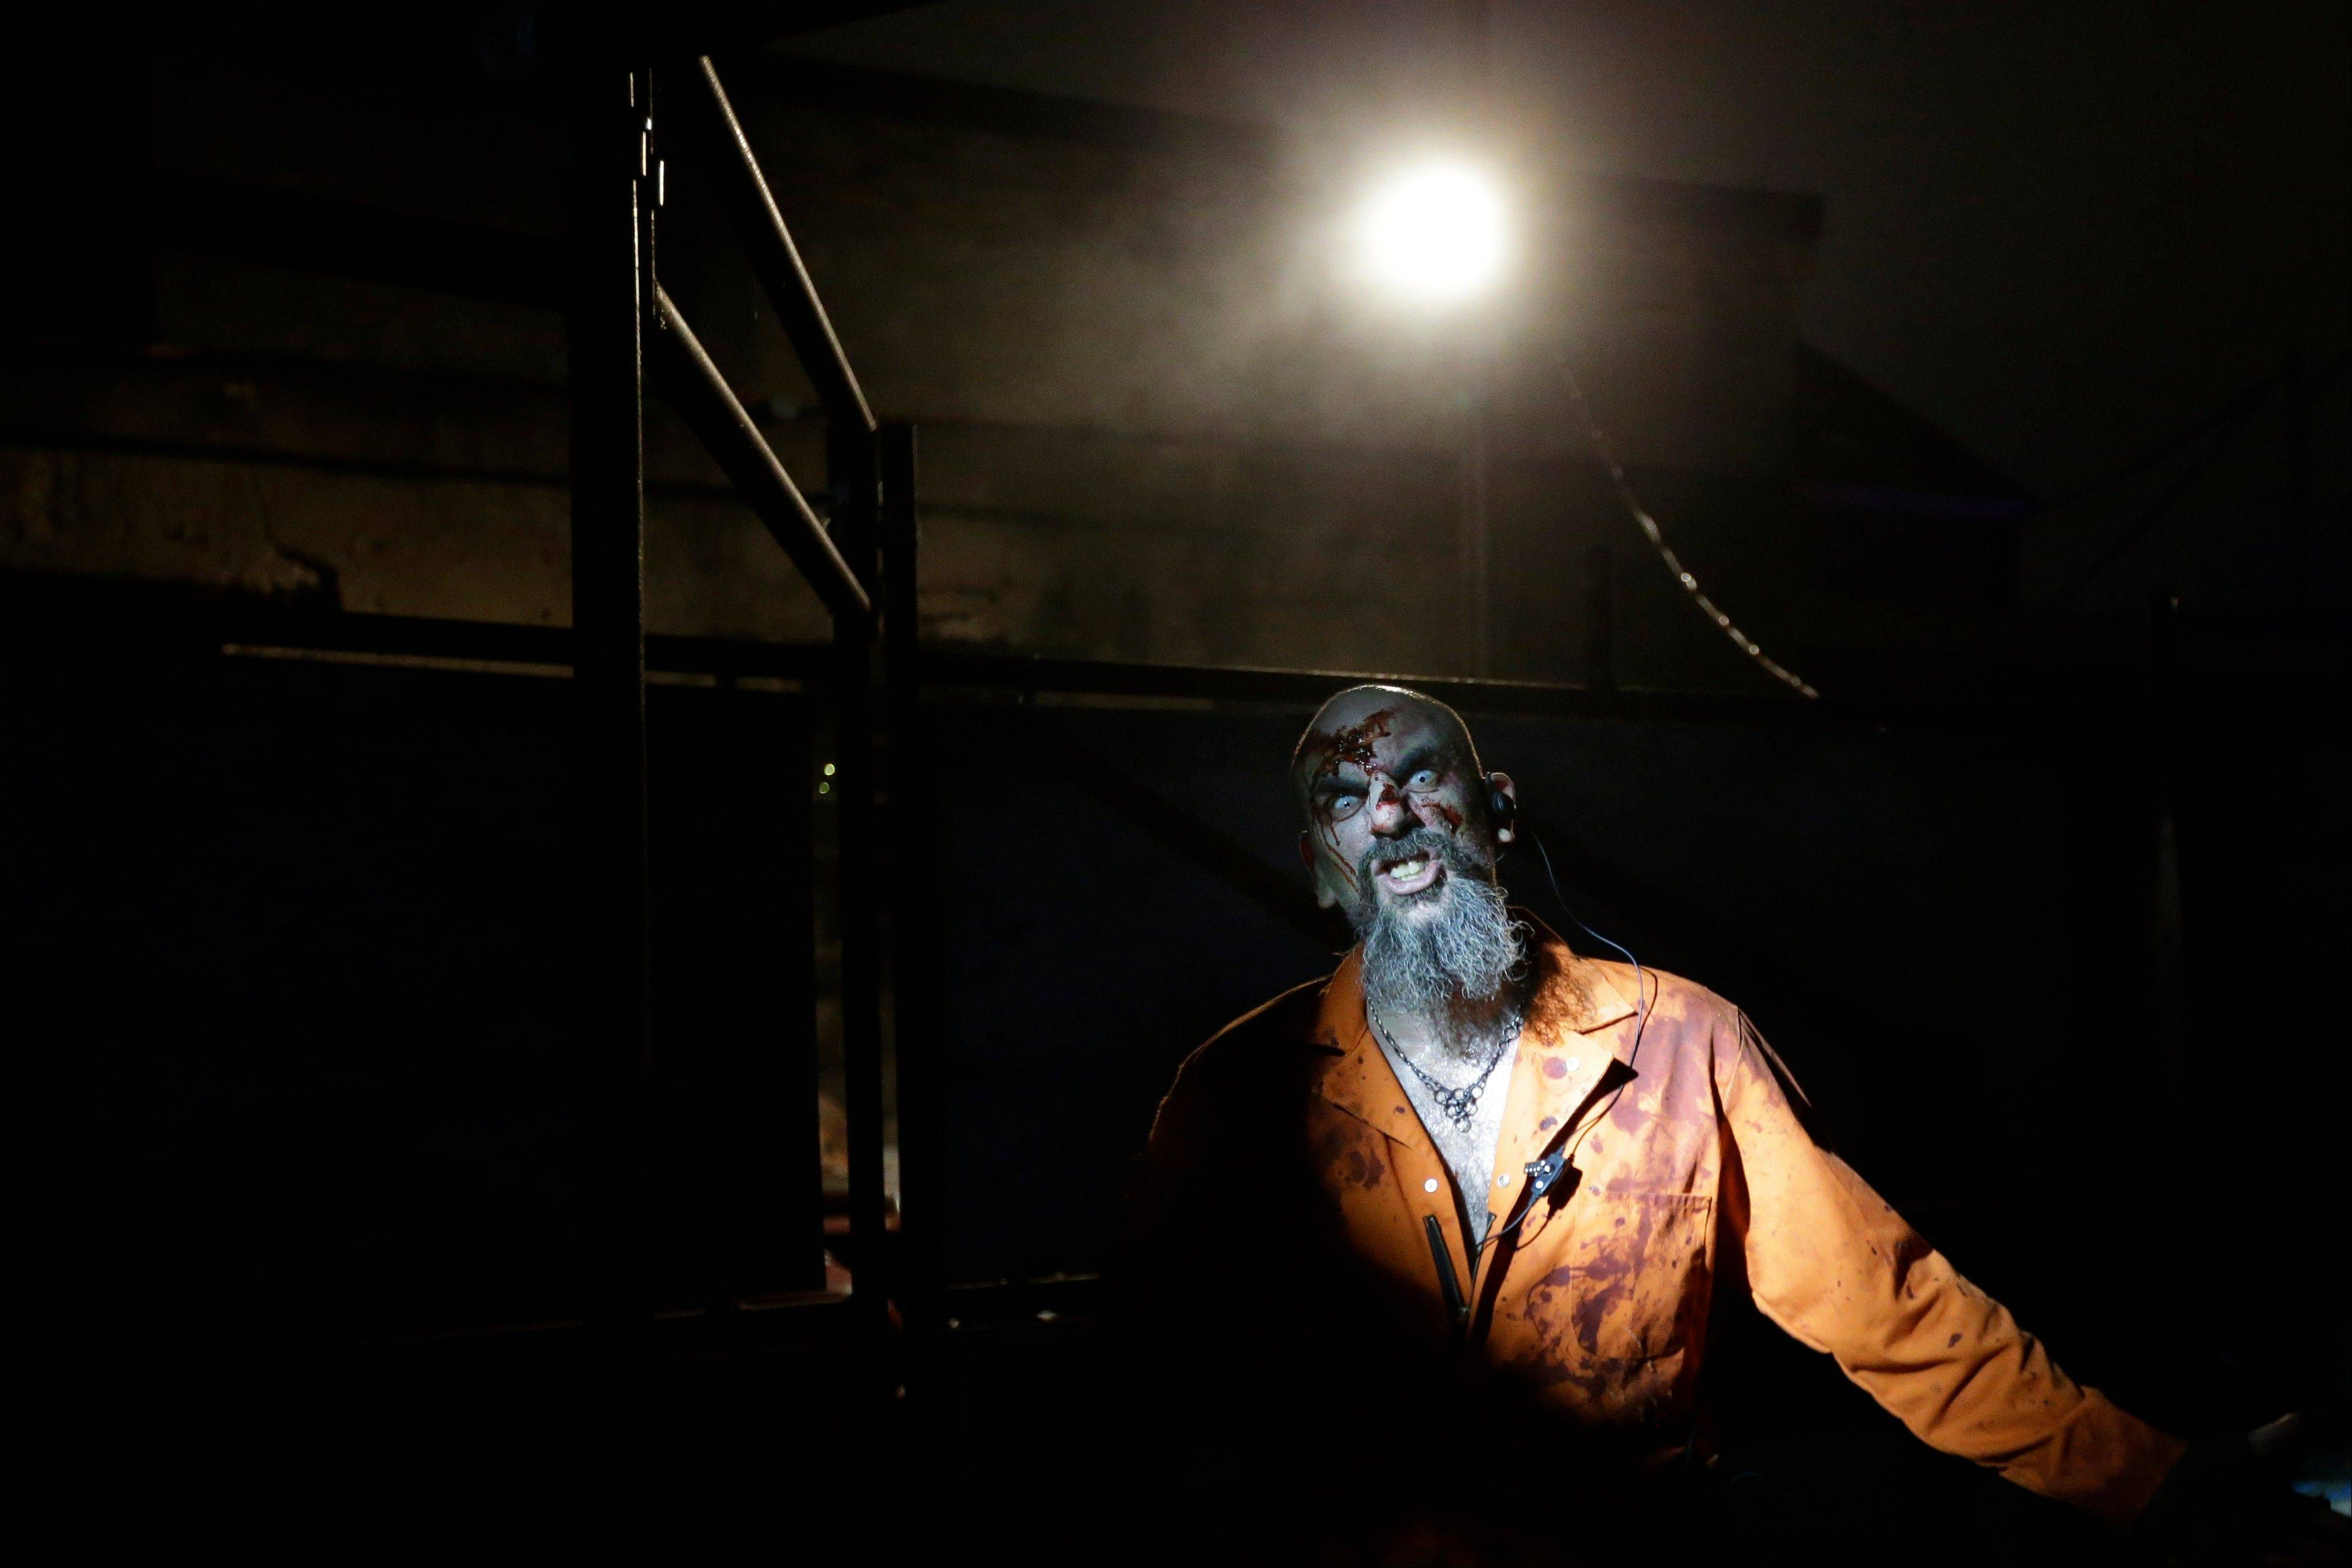 A zombie inmate brings some scares to Terror Behind the Walls at Eastern State Penitentiary.